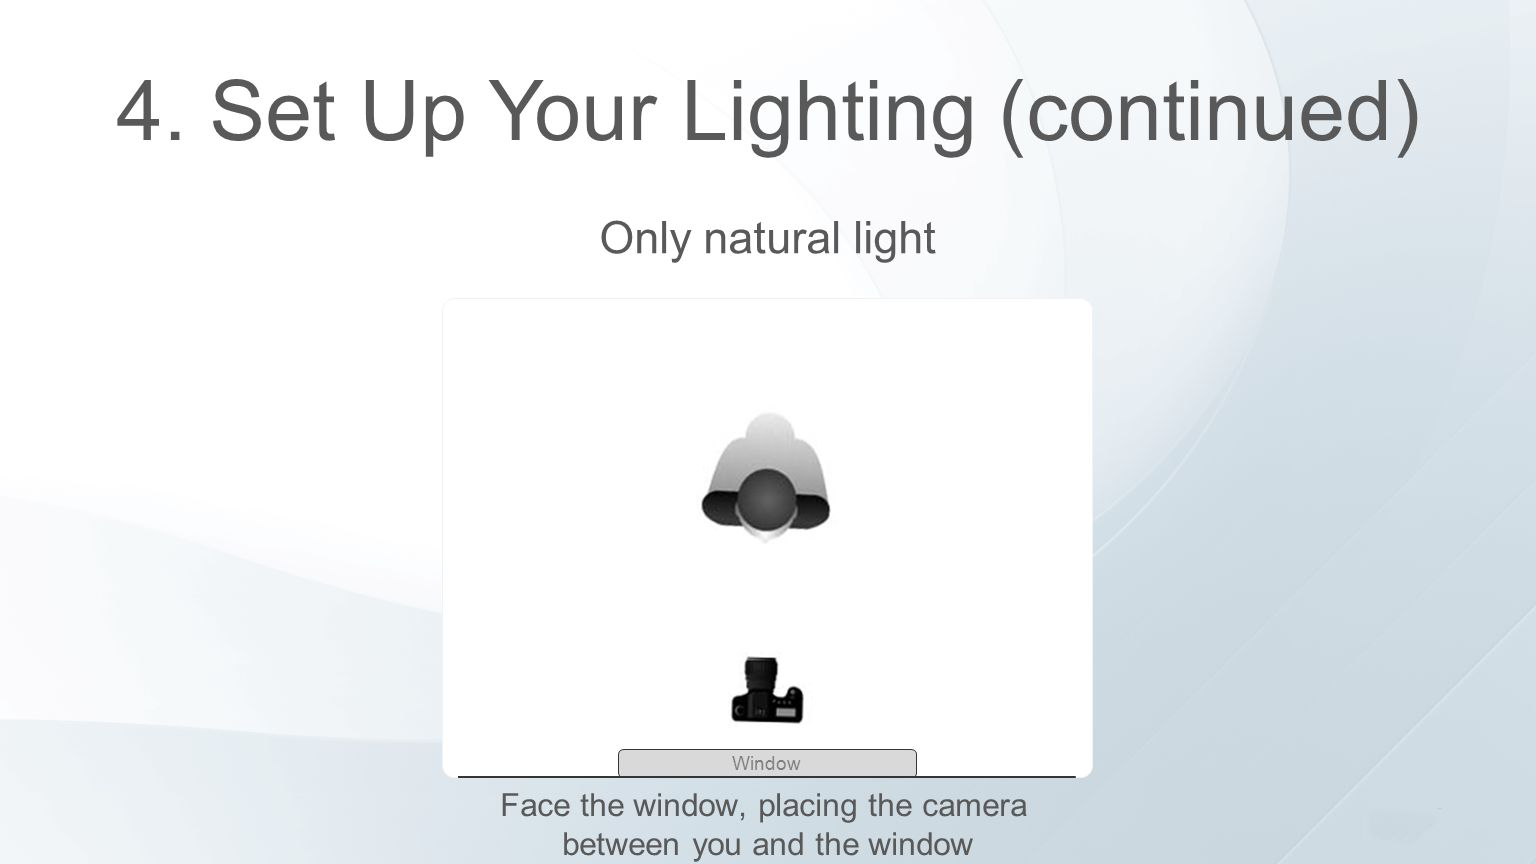 4. Set Up Your Lighting (continued) Only natural light Window Face the window, placing the camera between you and the window